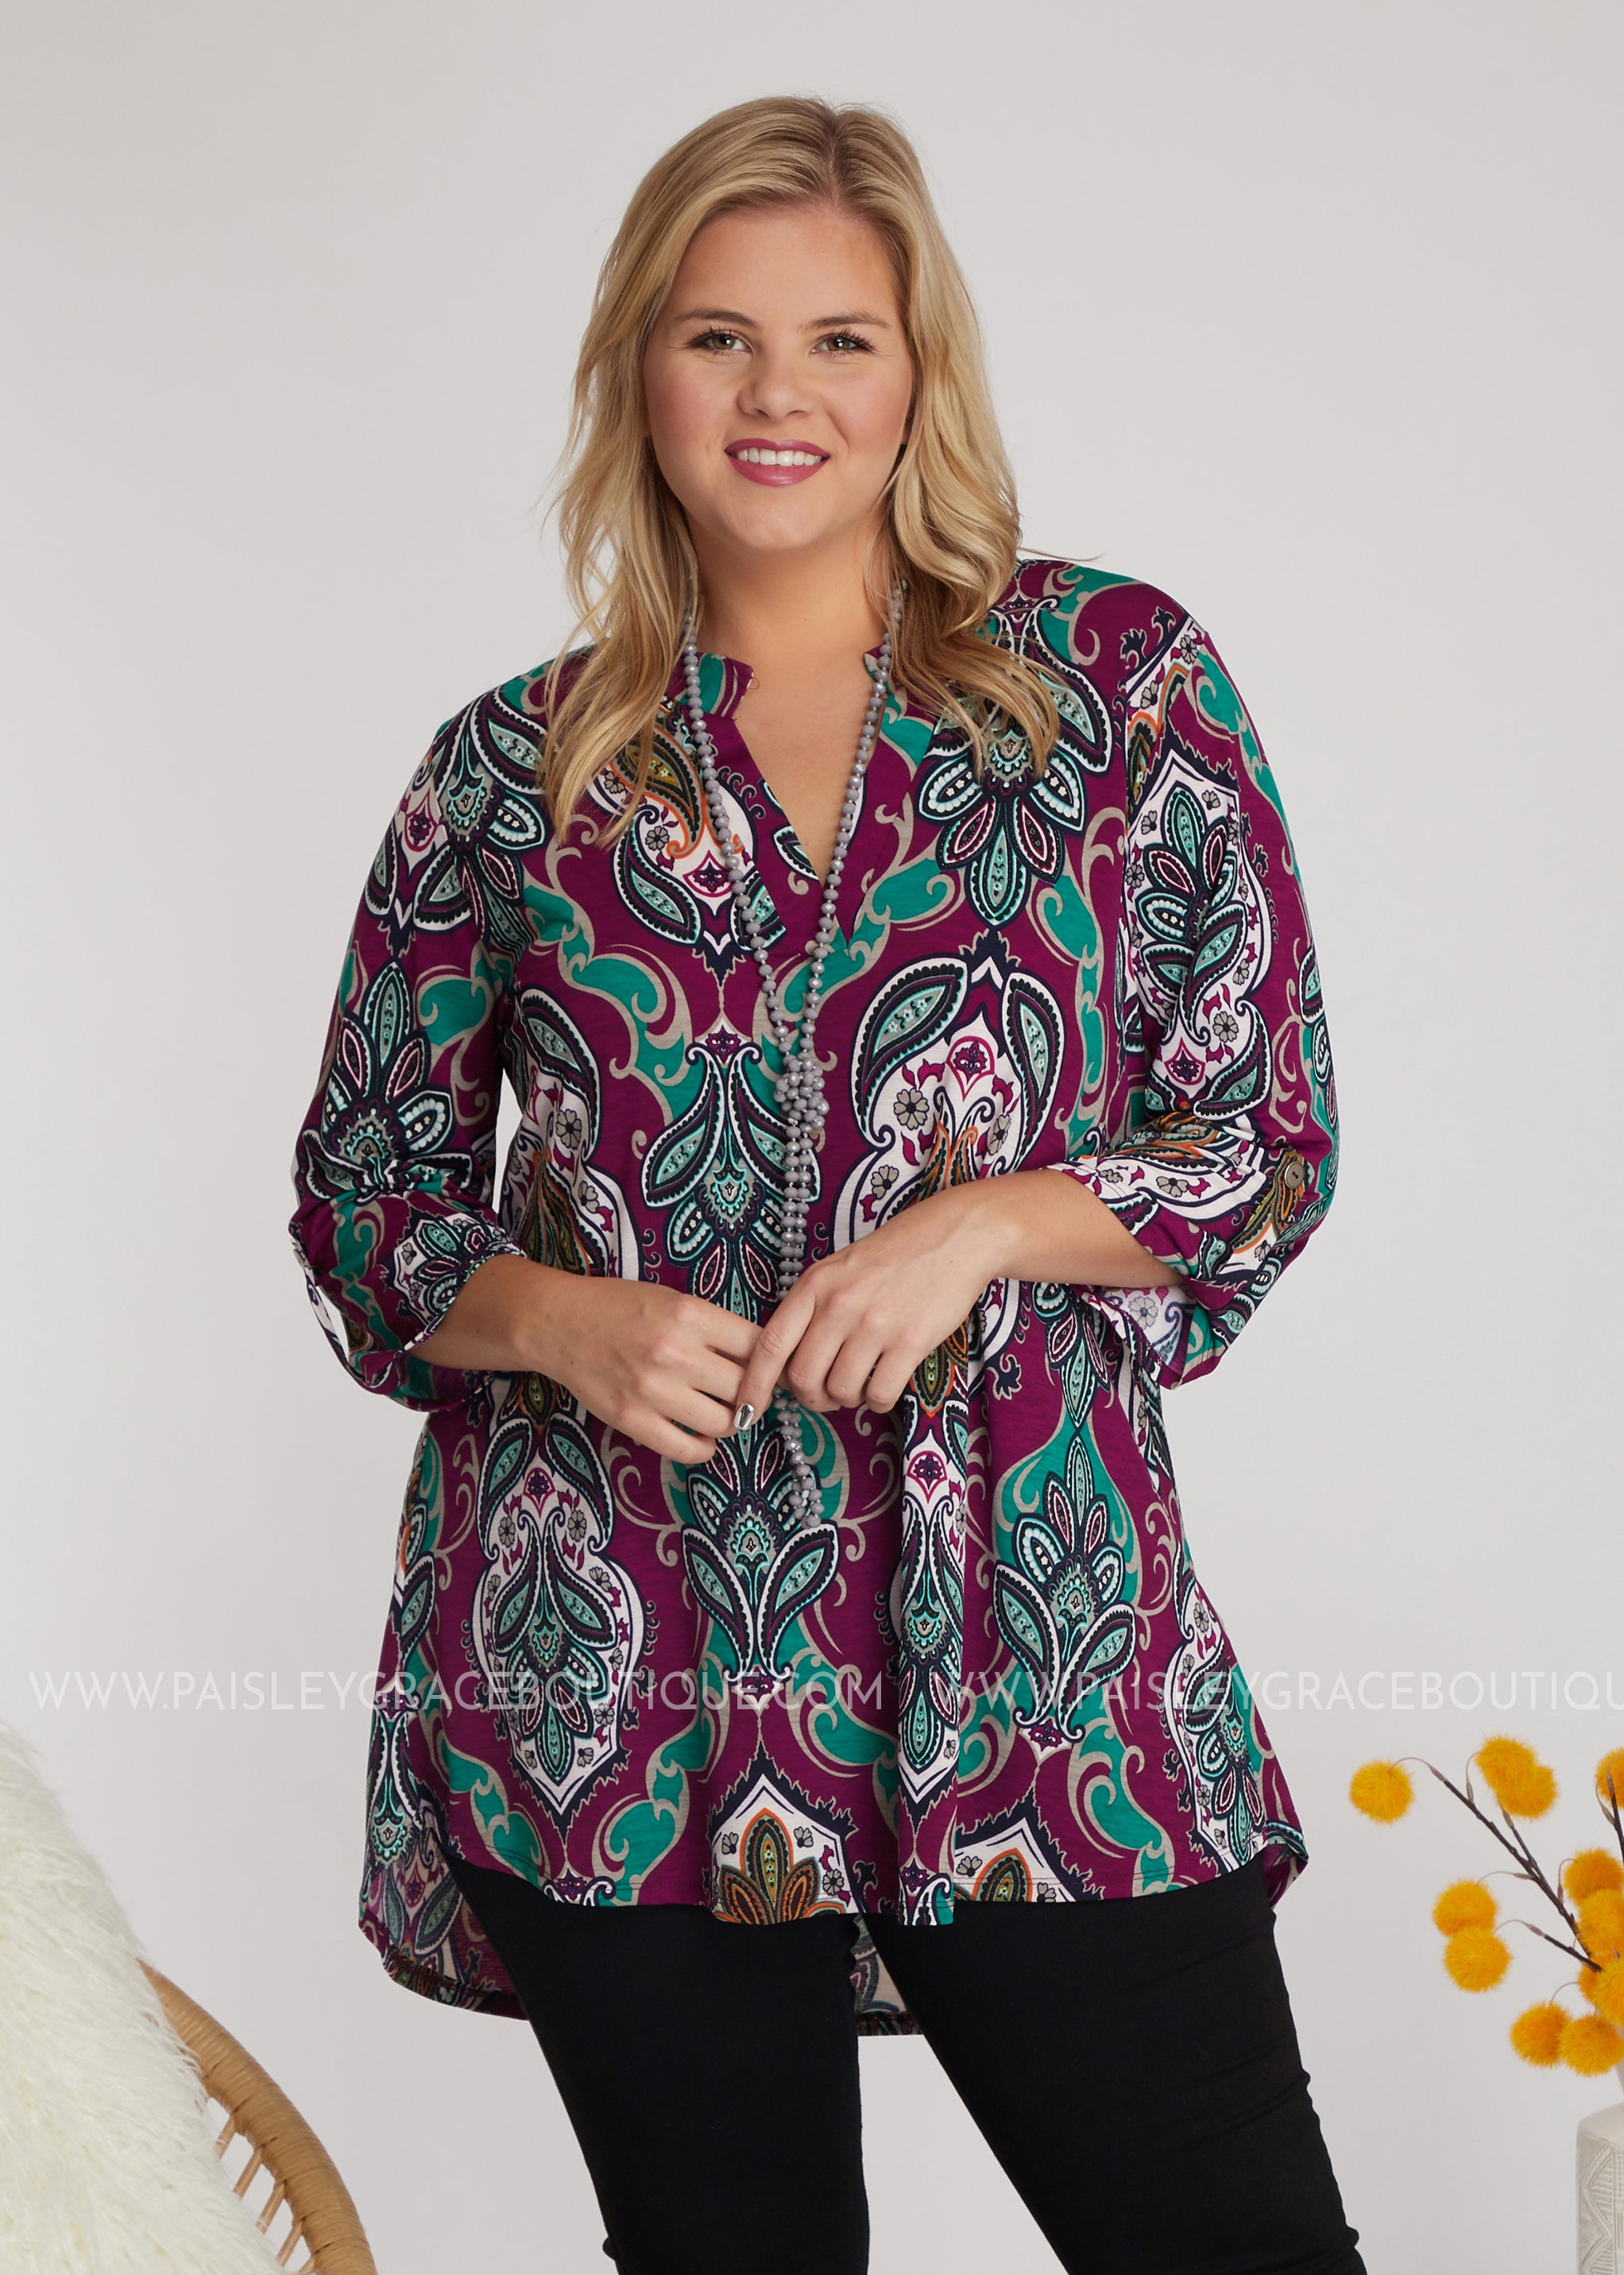 Sangria Swirl Top - FINAL SALE